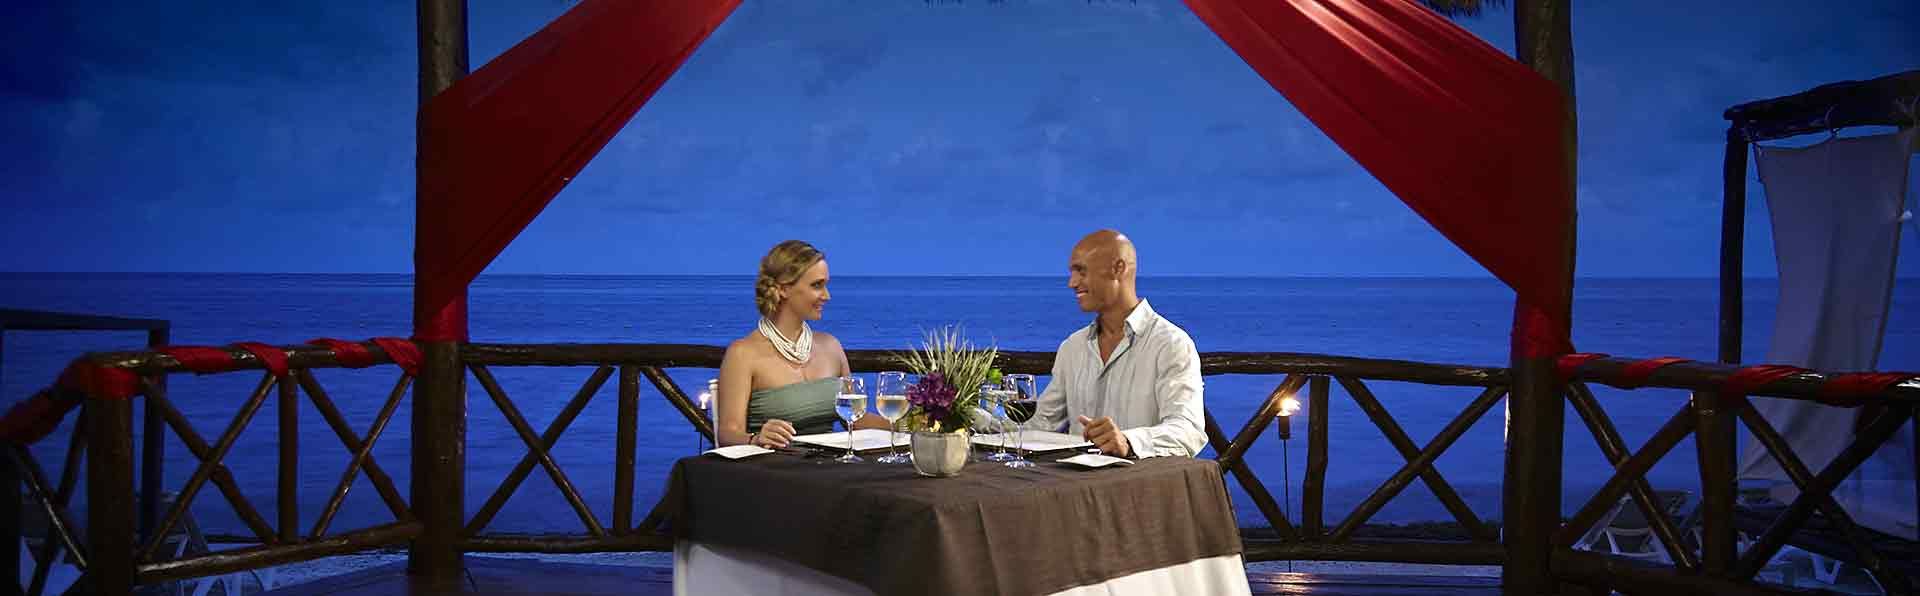 Romantic Beachside Gazebo Dinner at Desire Resort Riviera Maya